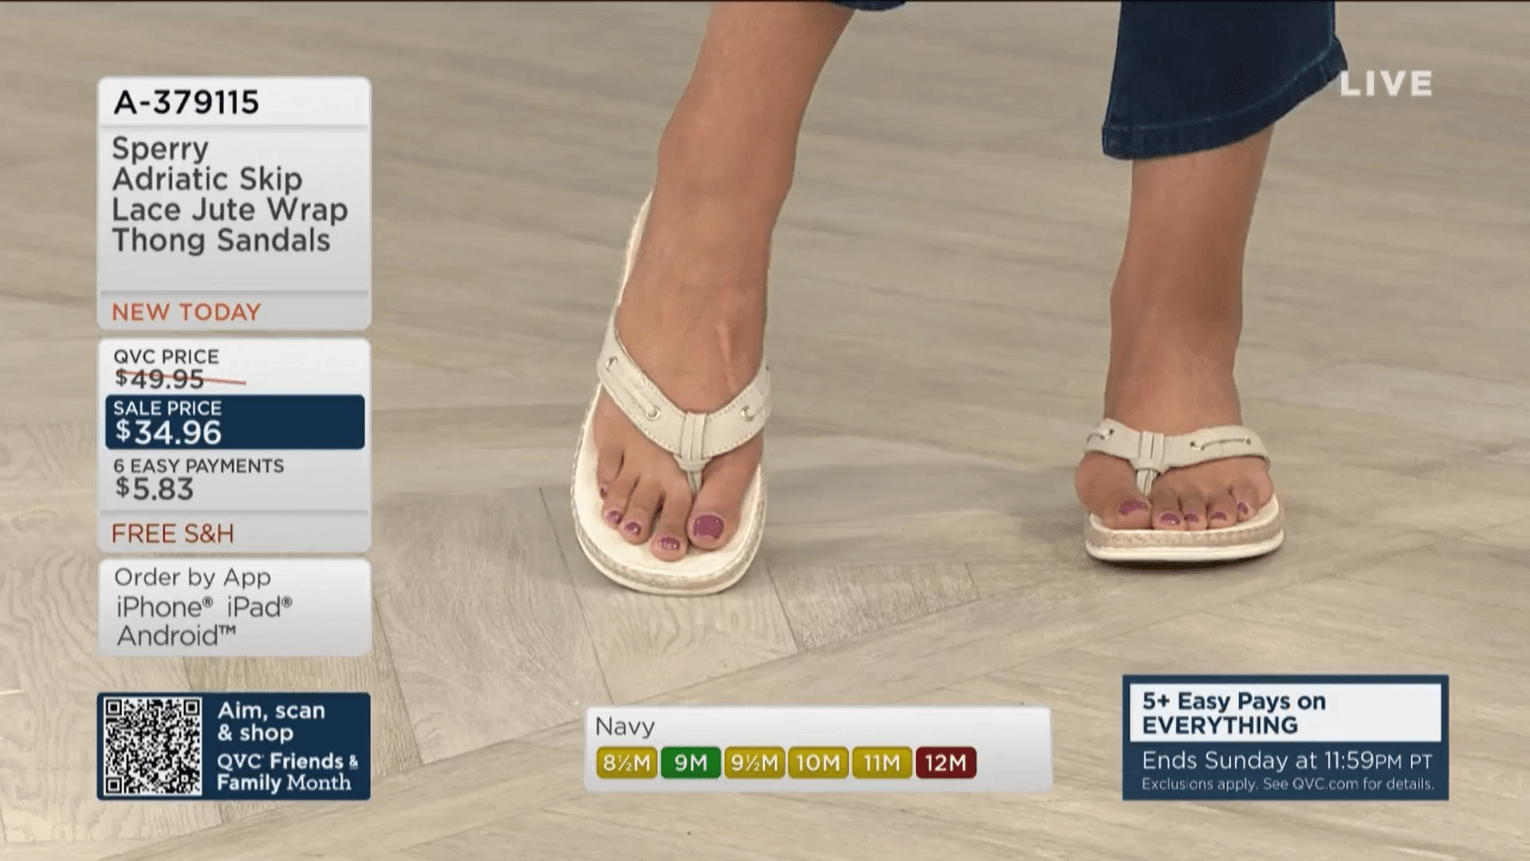 Feet of QVC host Courtney Webb in Sperry thong sandals.